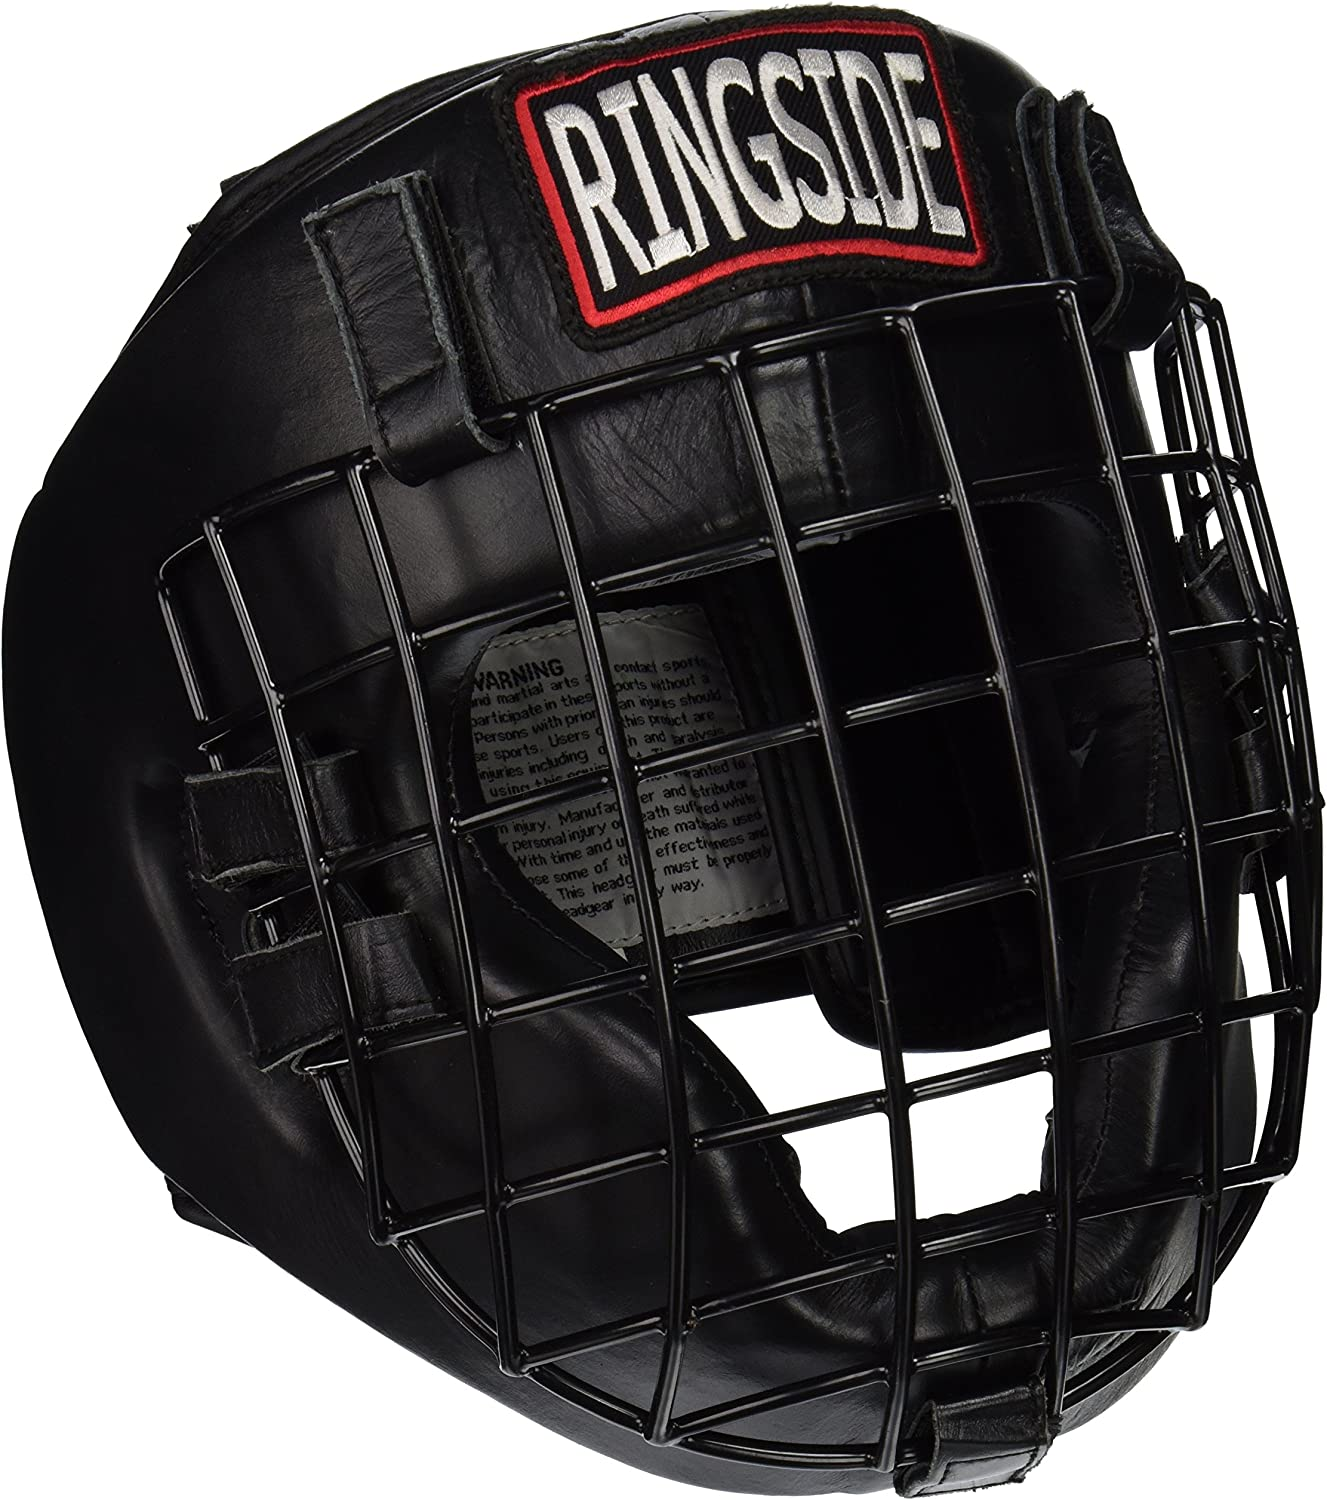 Ringside New York Mall Safety Cage Ranking TOP6 Headgear Training